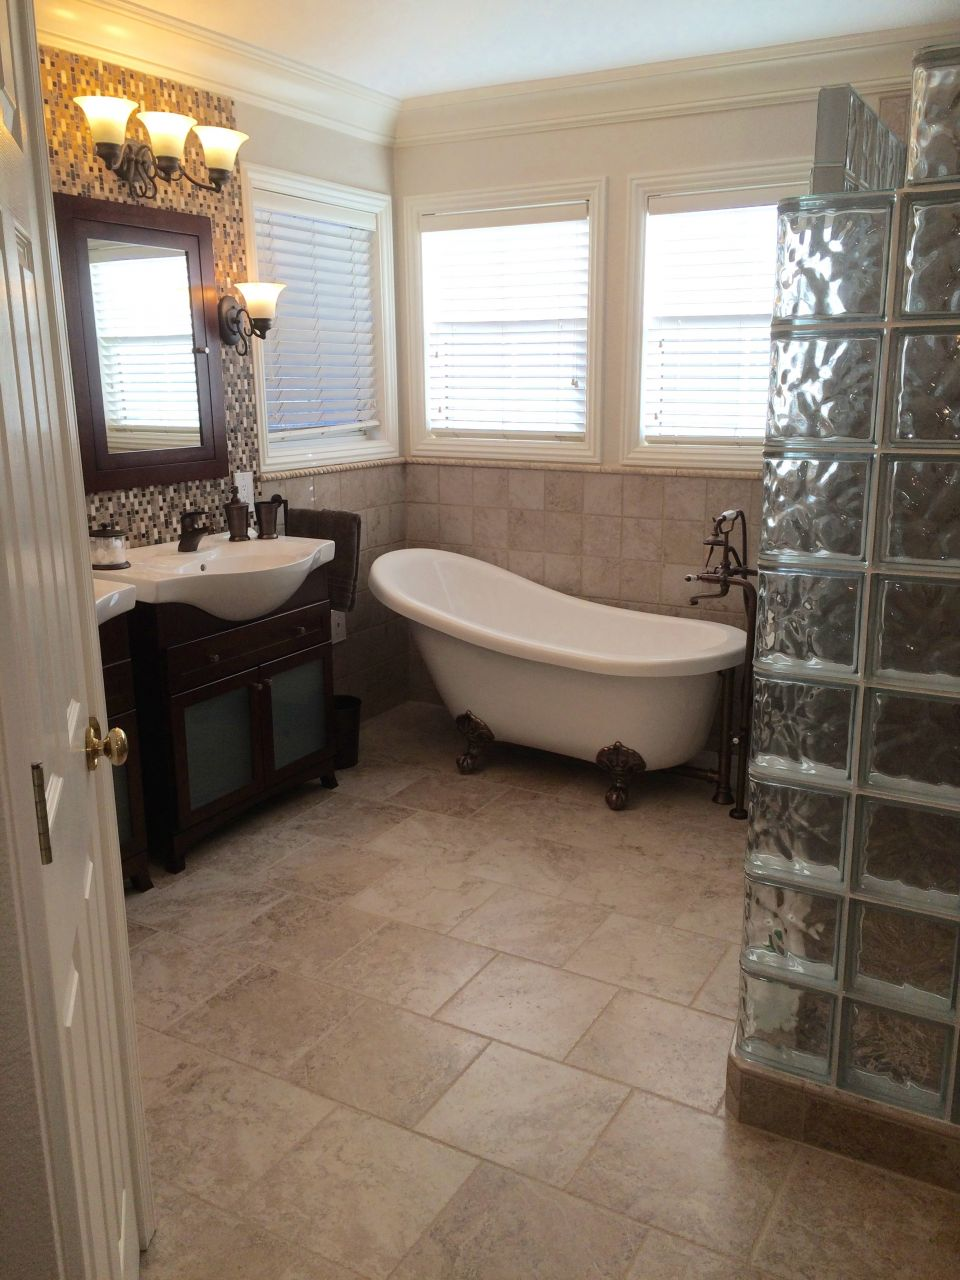 5 Out of the Box Remodeling Tips for a Master Bathroom in Martinez Master Bathroom Designs Floor on master bathroom rugs, roof floor designs, water floor designs, bedroom floor designs, landscaping floor designs, family room floor designs, dining floor designs, master suite bathrooms, luxury master bedroom designs, half bath floor designs, master bathroom ceiling, fireplace floor designs, master bathroom lighting, master bathroom columns, master tiles designs, entrance floor designs, luxury bathroom designs, master bath designs, office floor designs, master bathroom furniture,